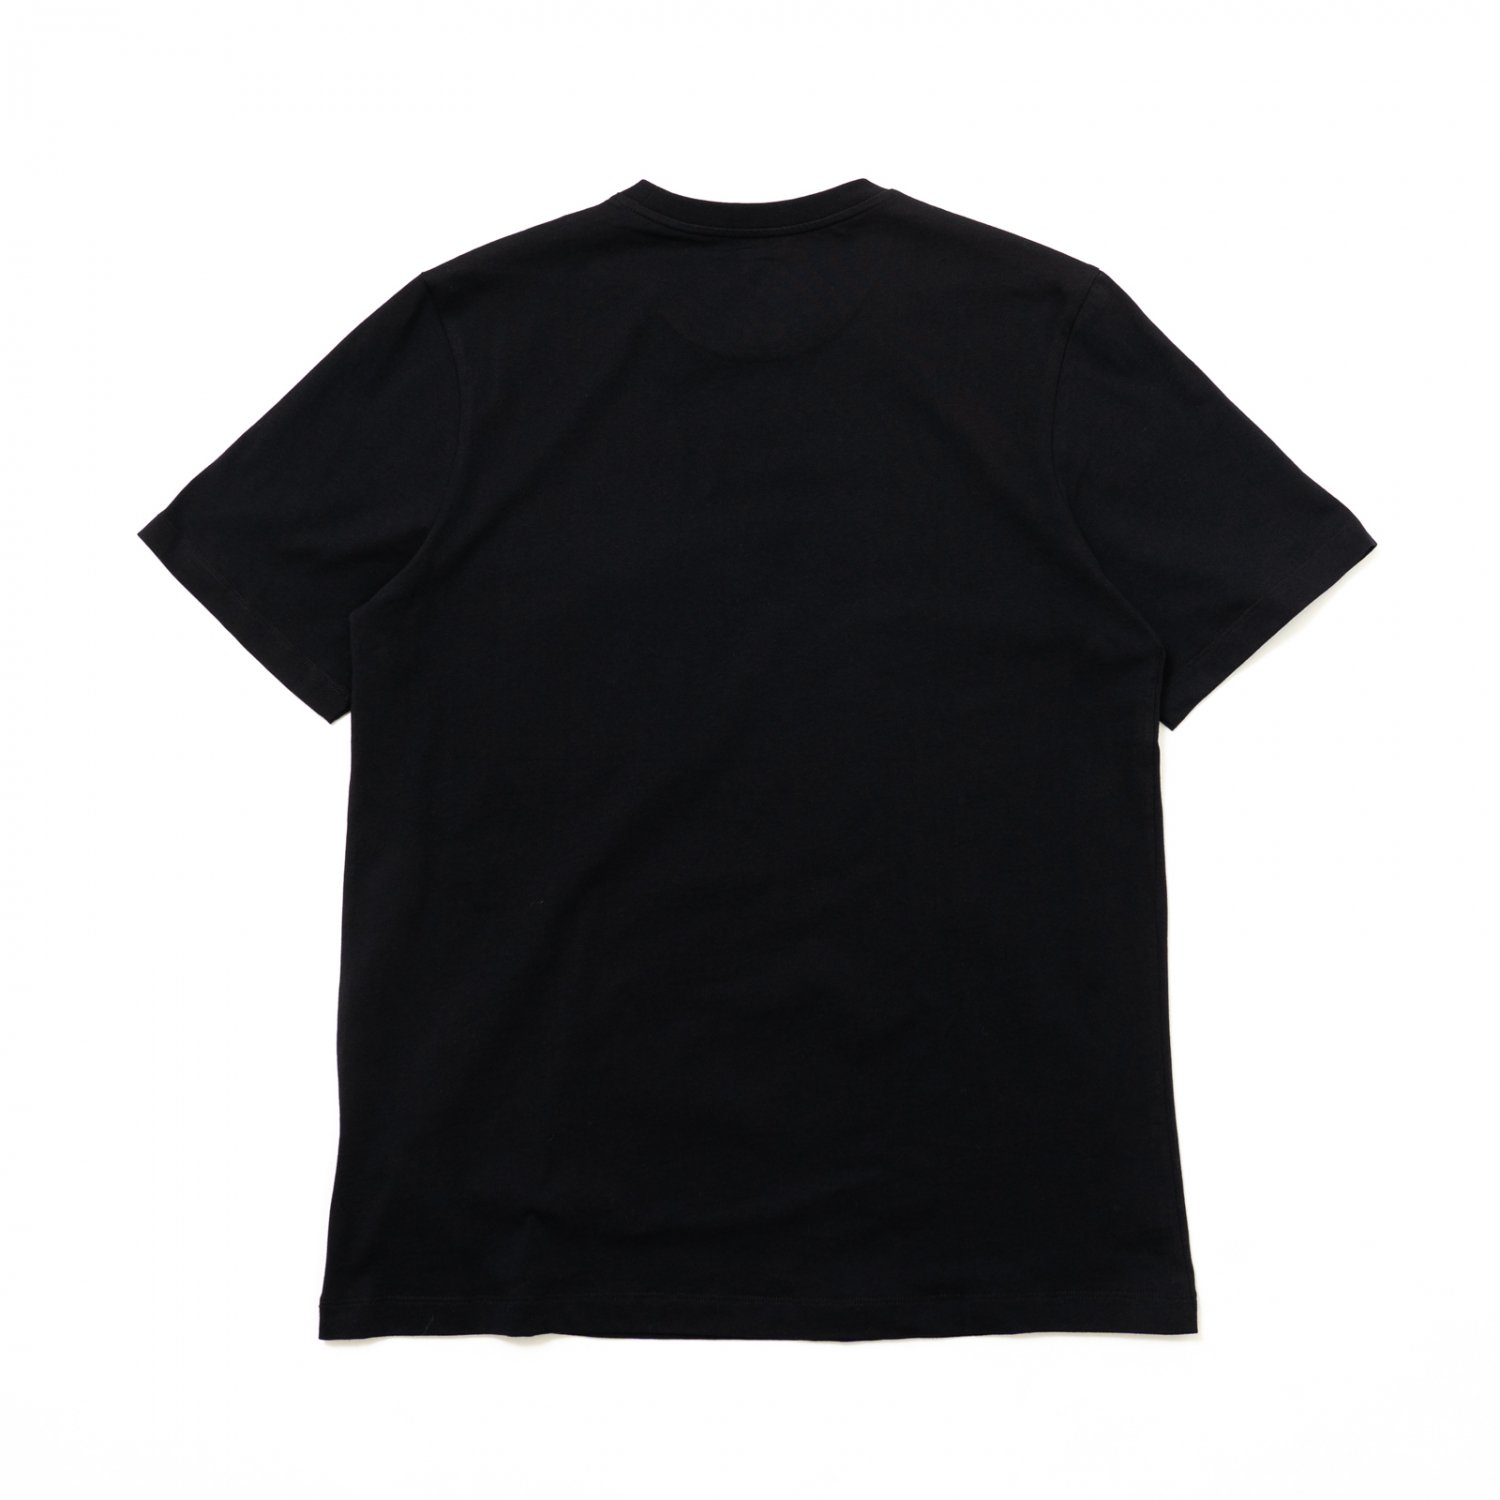 OAMC * LOGO POCKET T-SHIRT * Black